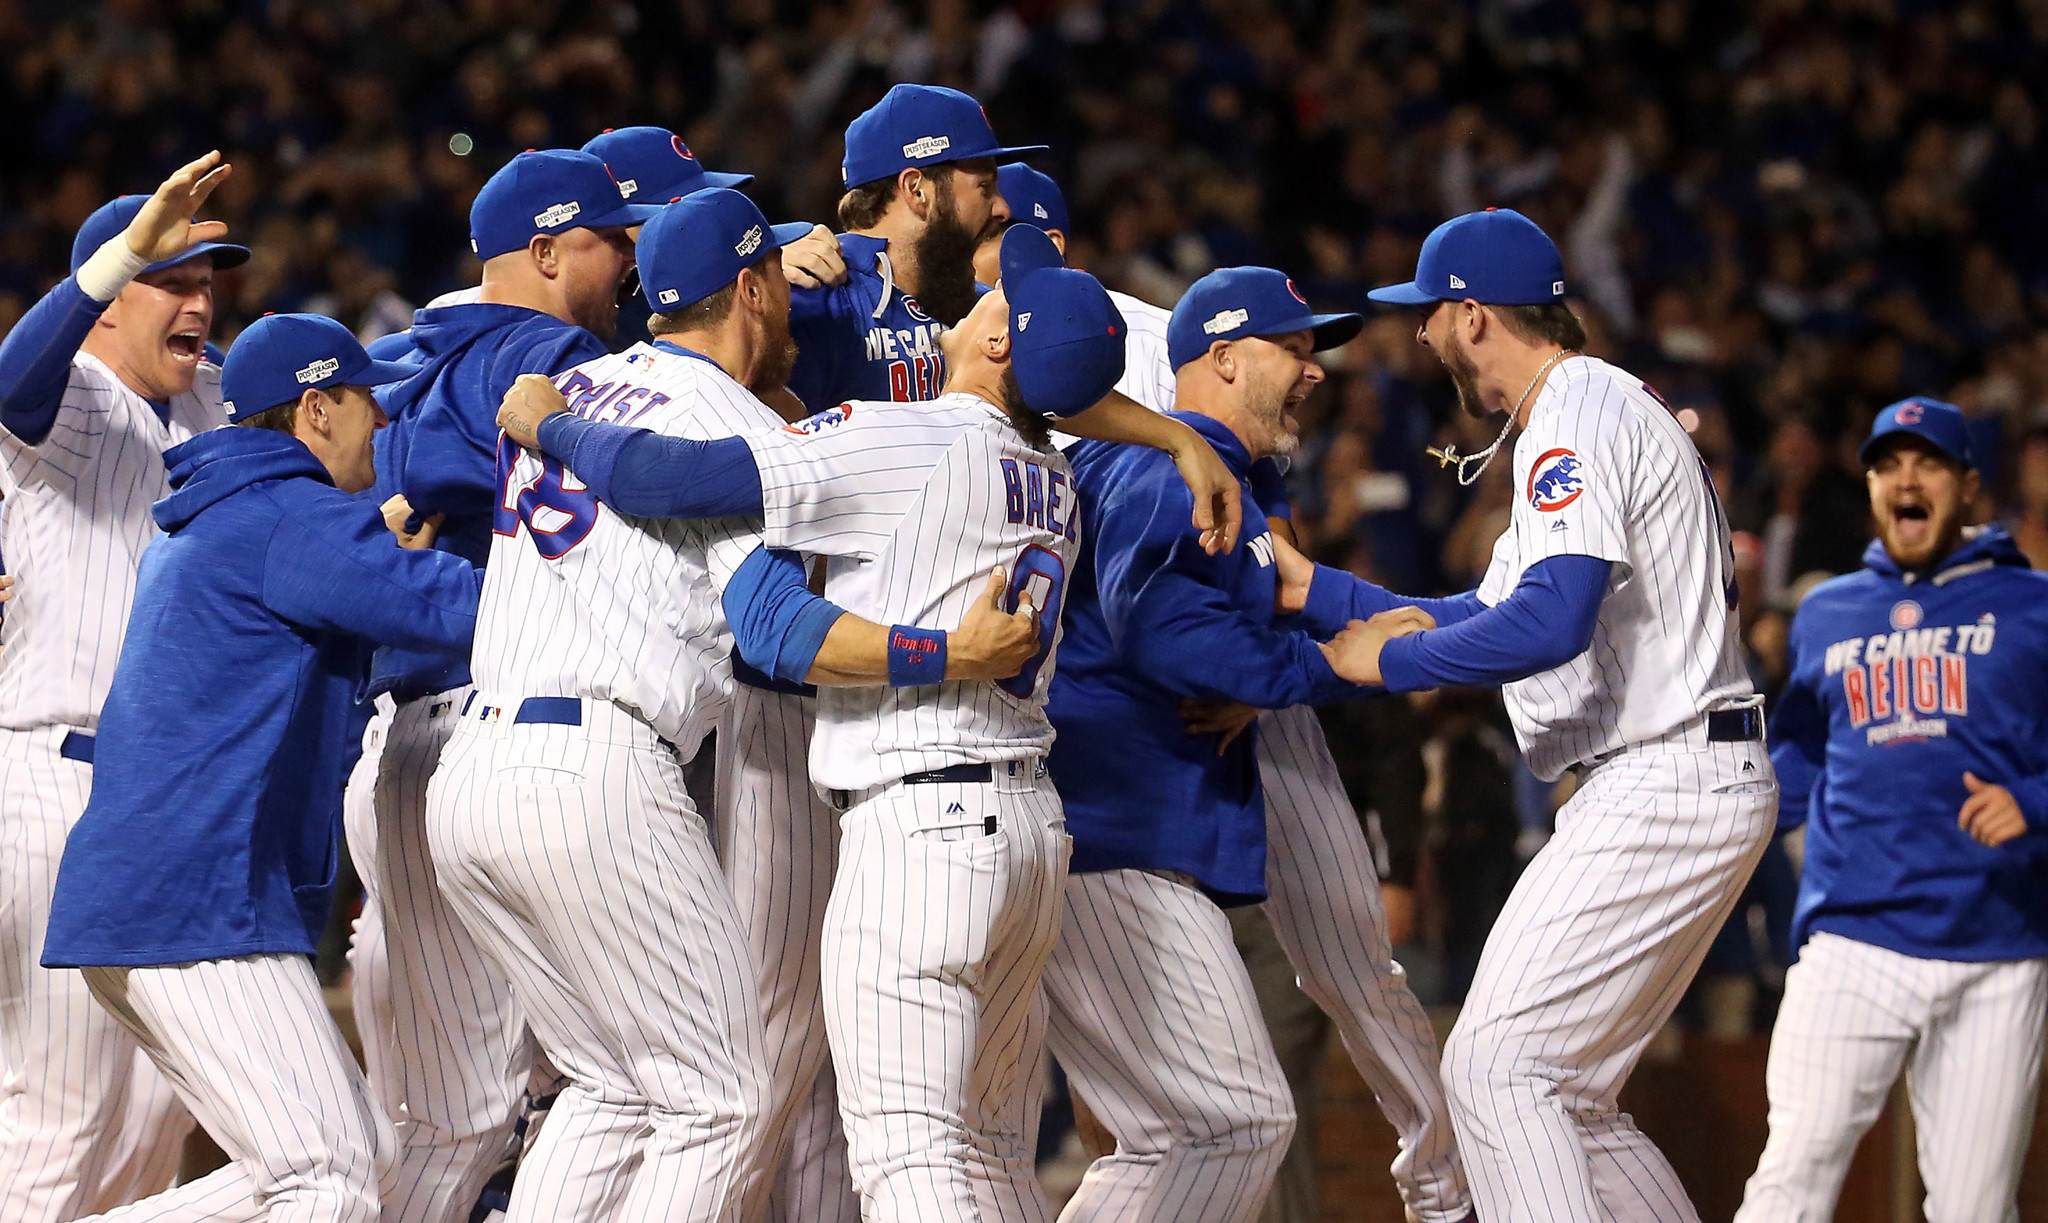 Ct-cubs-clincher-nlcs-tv-ratings-20161023